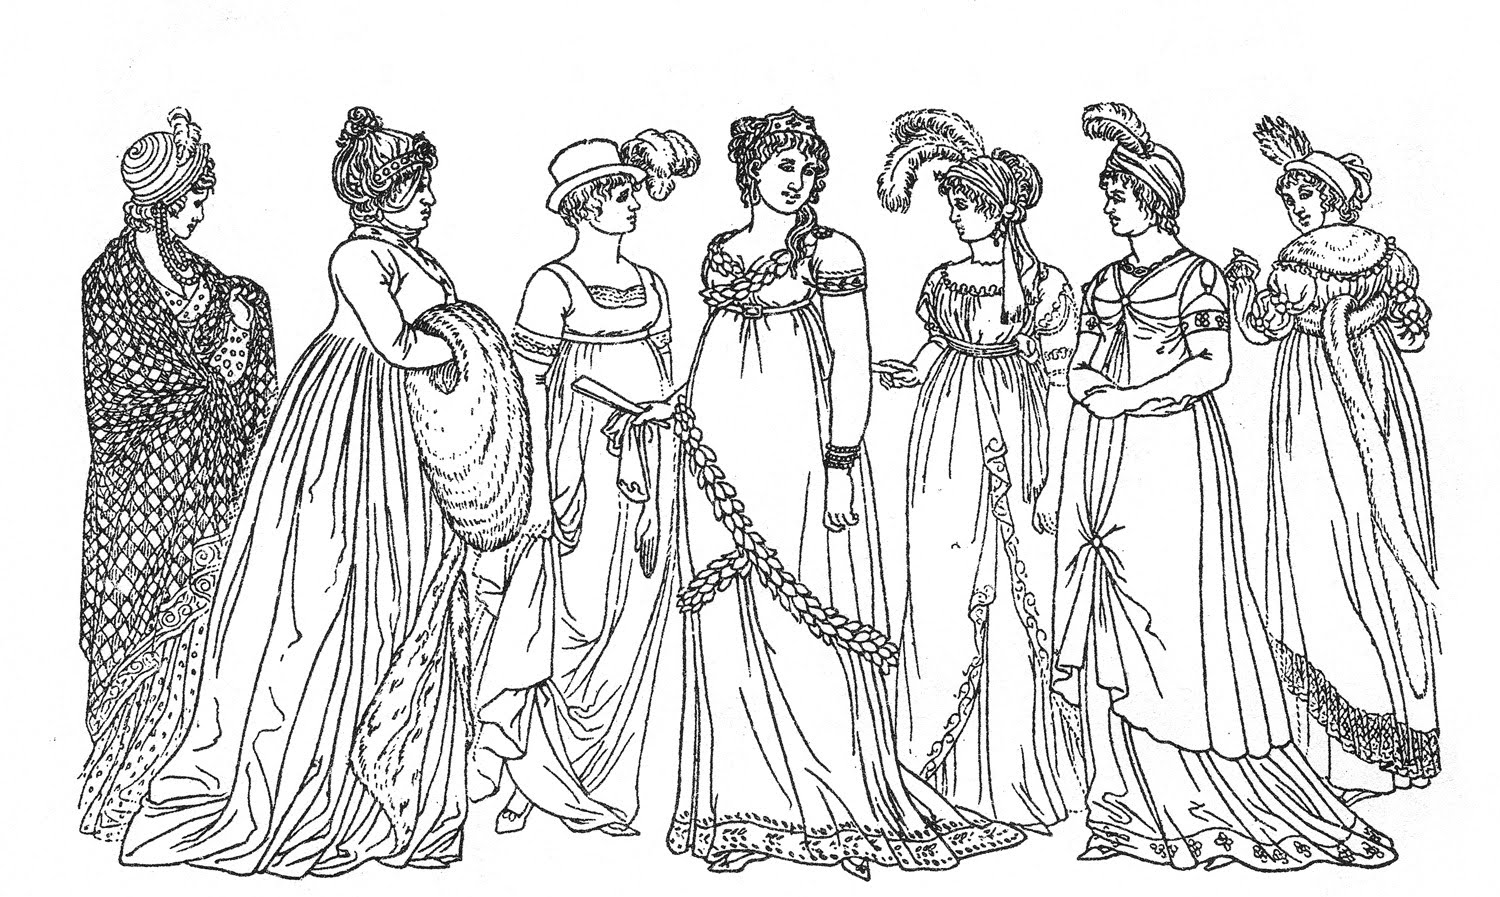 Victoria coloring dresses victorian clothes colouring pages page 2 - Vintage Kids Printable Regency Ladies Color Page